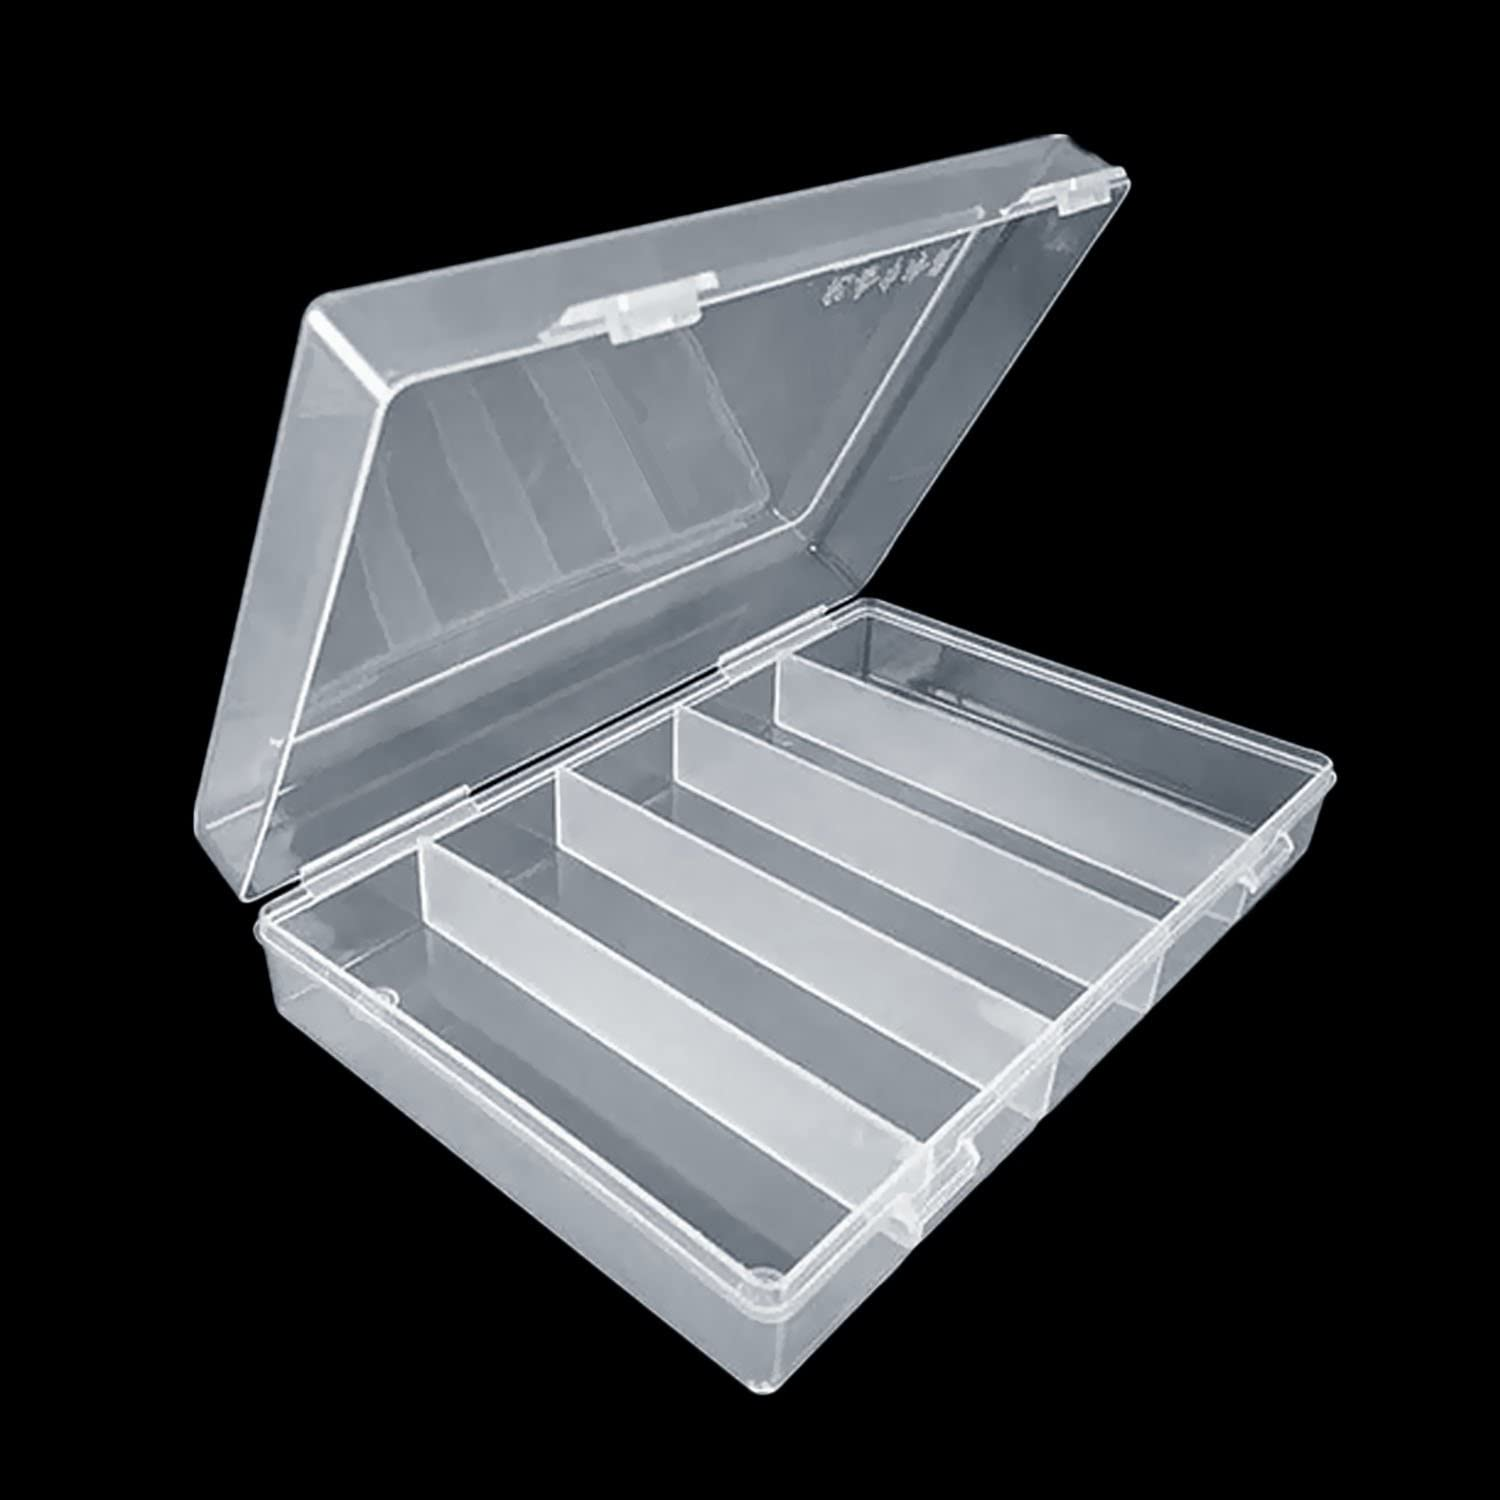 Suit for 30mm Coin 100pcs 30mm Clear Plastic Round Coin Display Capsules Container Holder Storage Case Box Organizer for Collectors